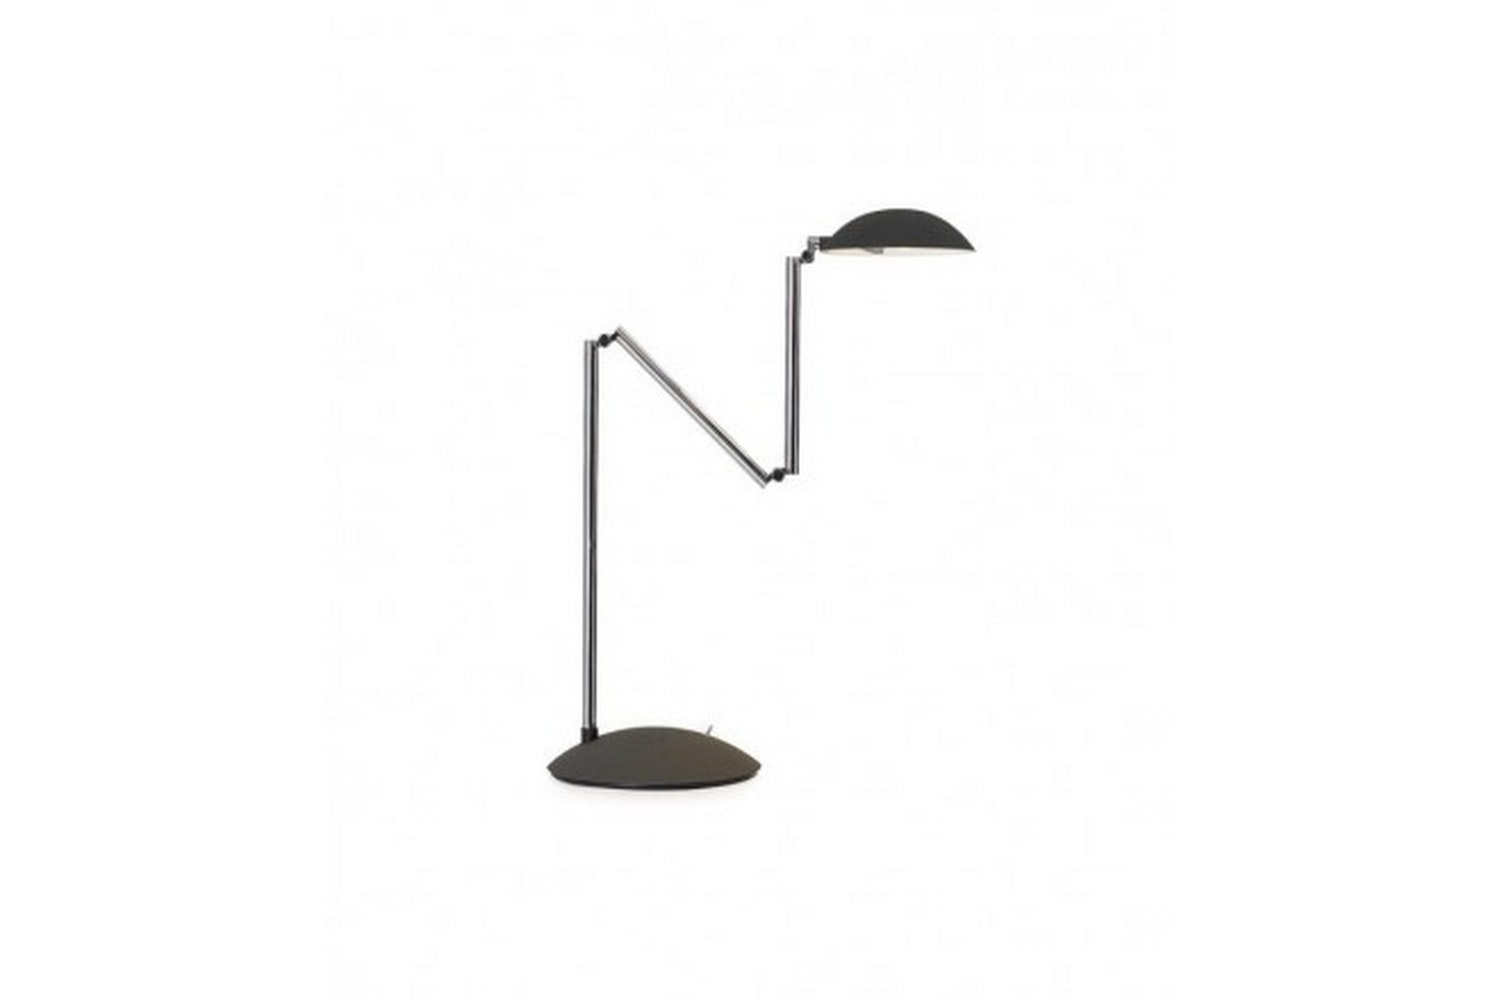 Orbis Desk Lamp by Herbert H. Schultes for ClassiCon